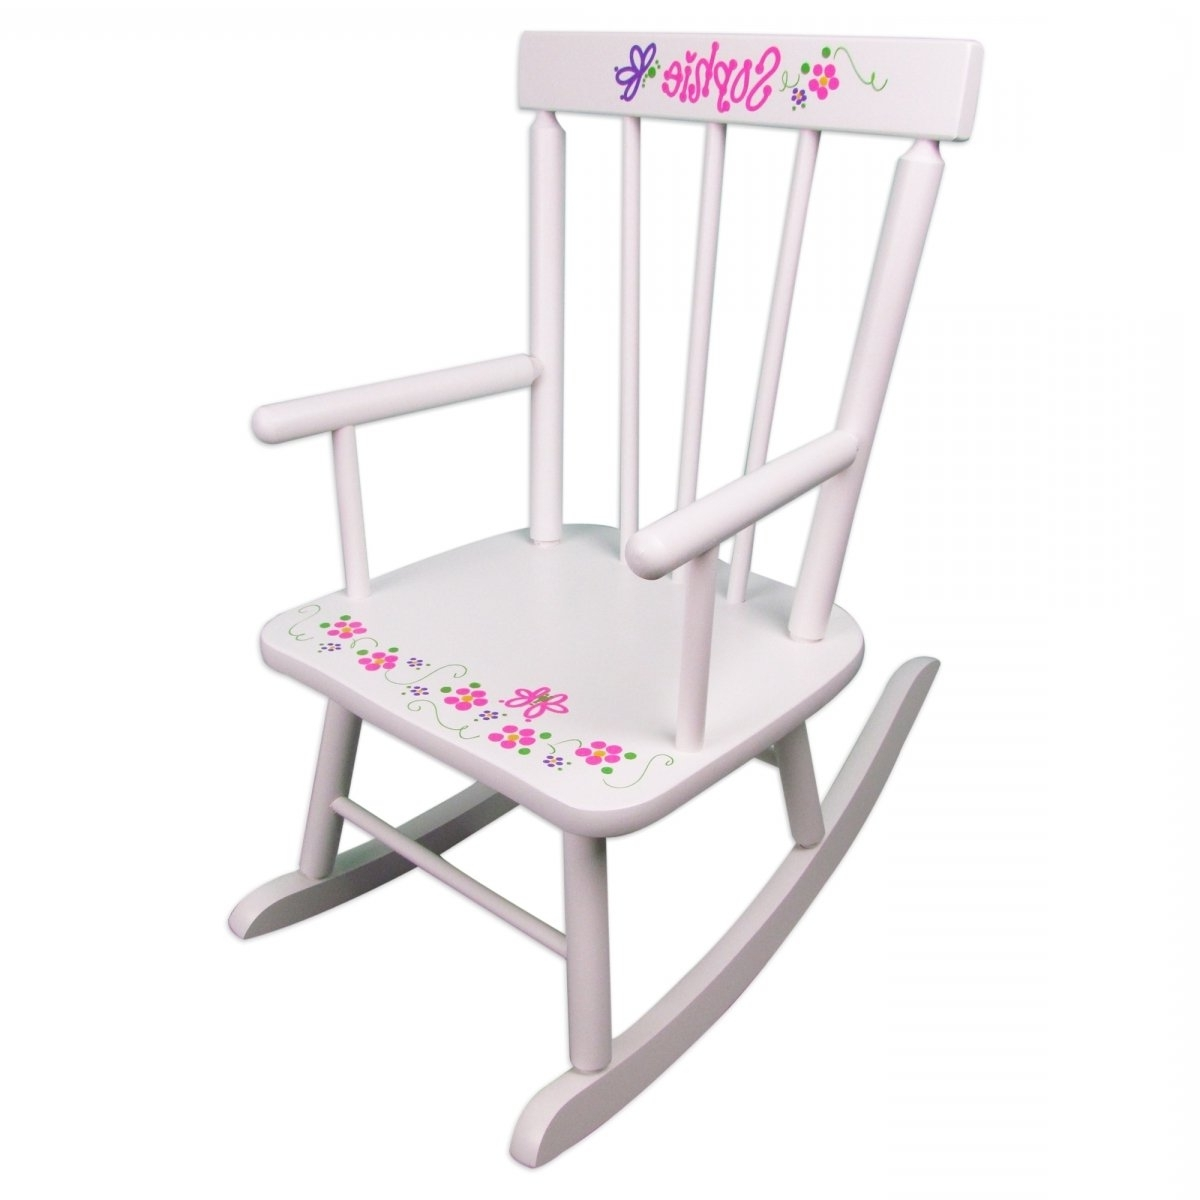 Most Recently Released Toddler Rocking Chair – Lisaasmith Within Rocking Chairs For Toddlers (View 10 of 15)